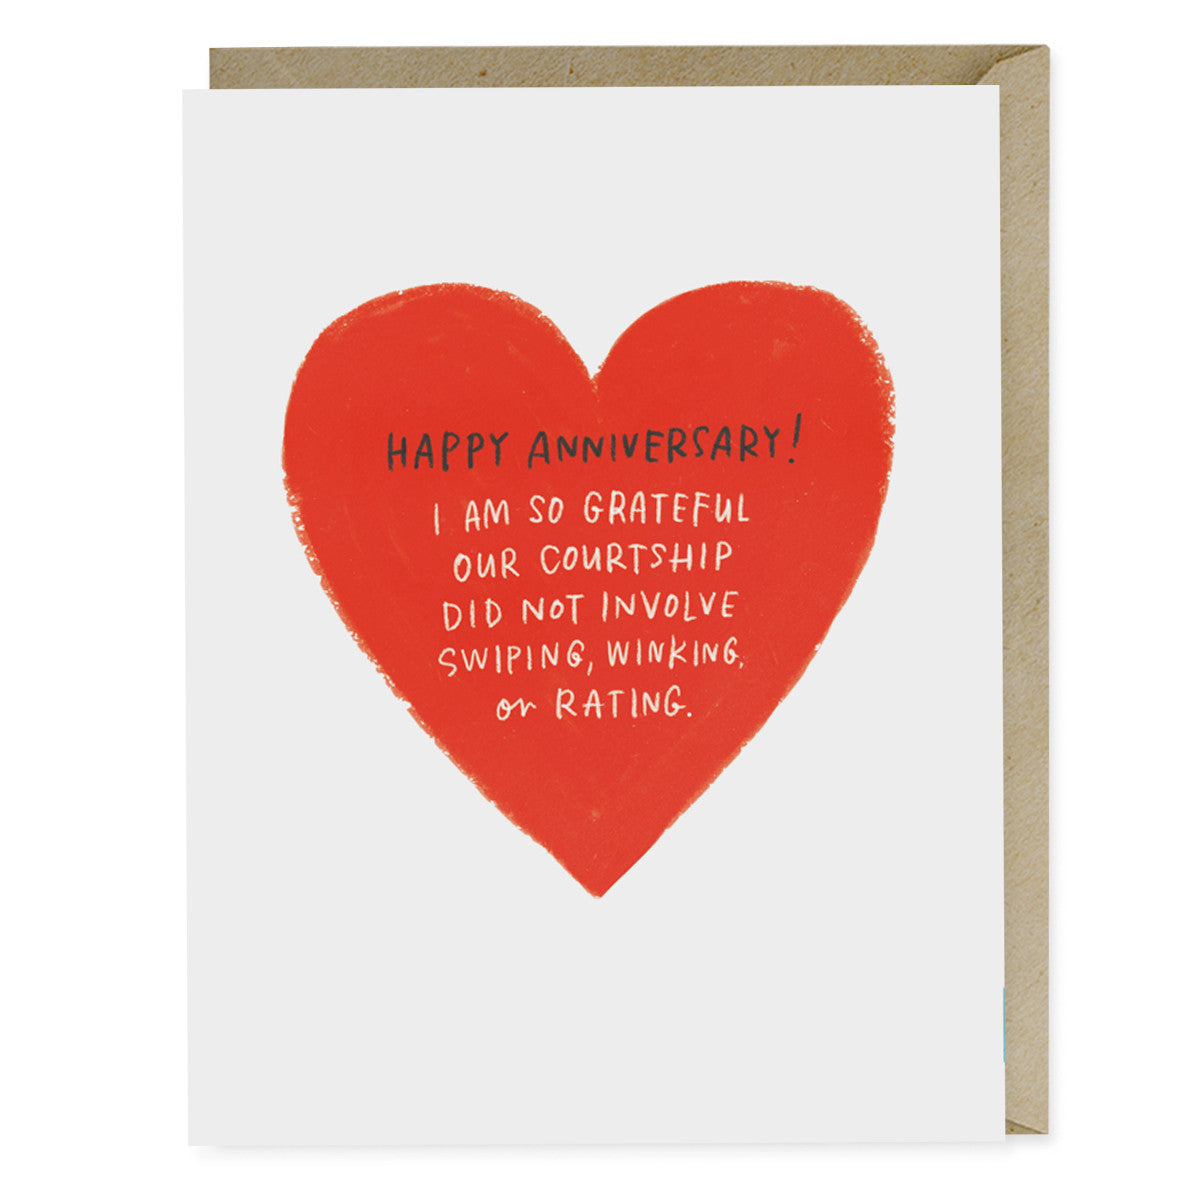 Swiping Winking Rating Anniversary Card